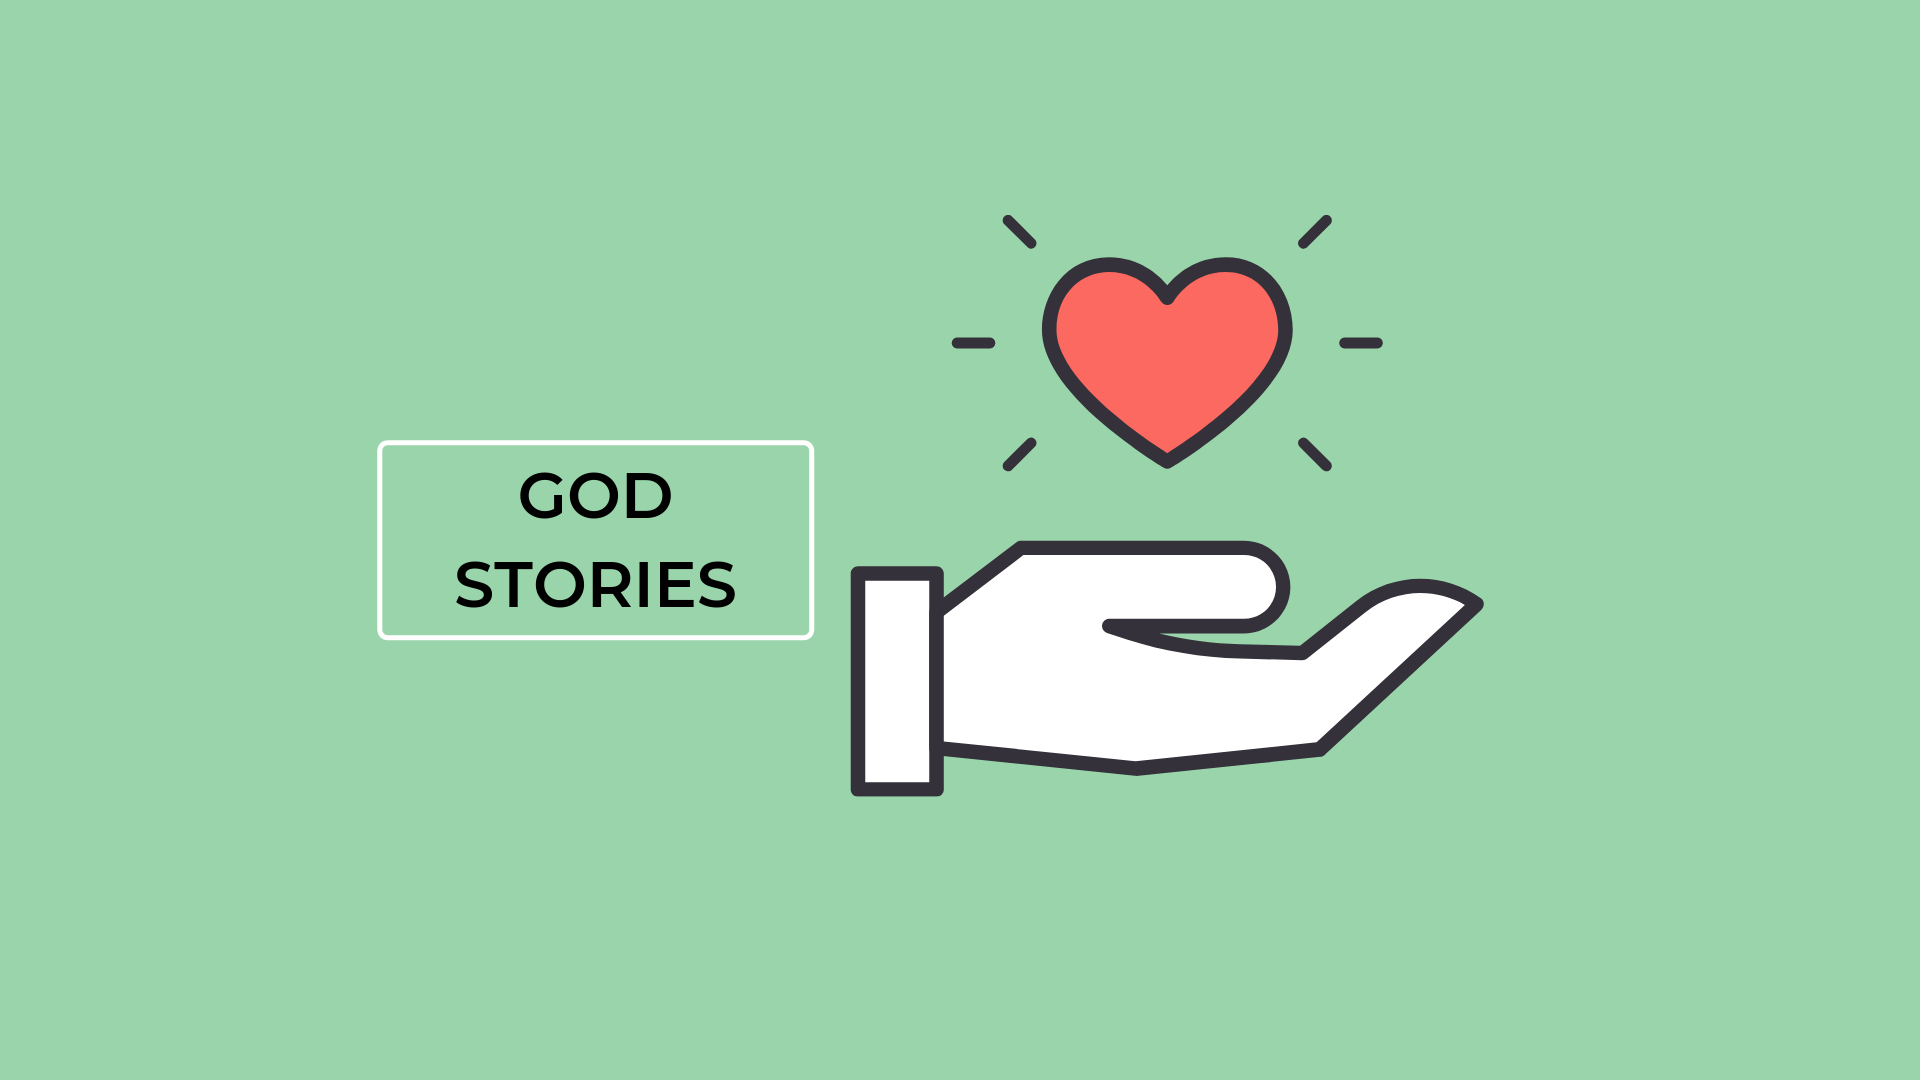 GOD STORIES (2).png